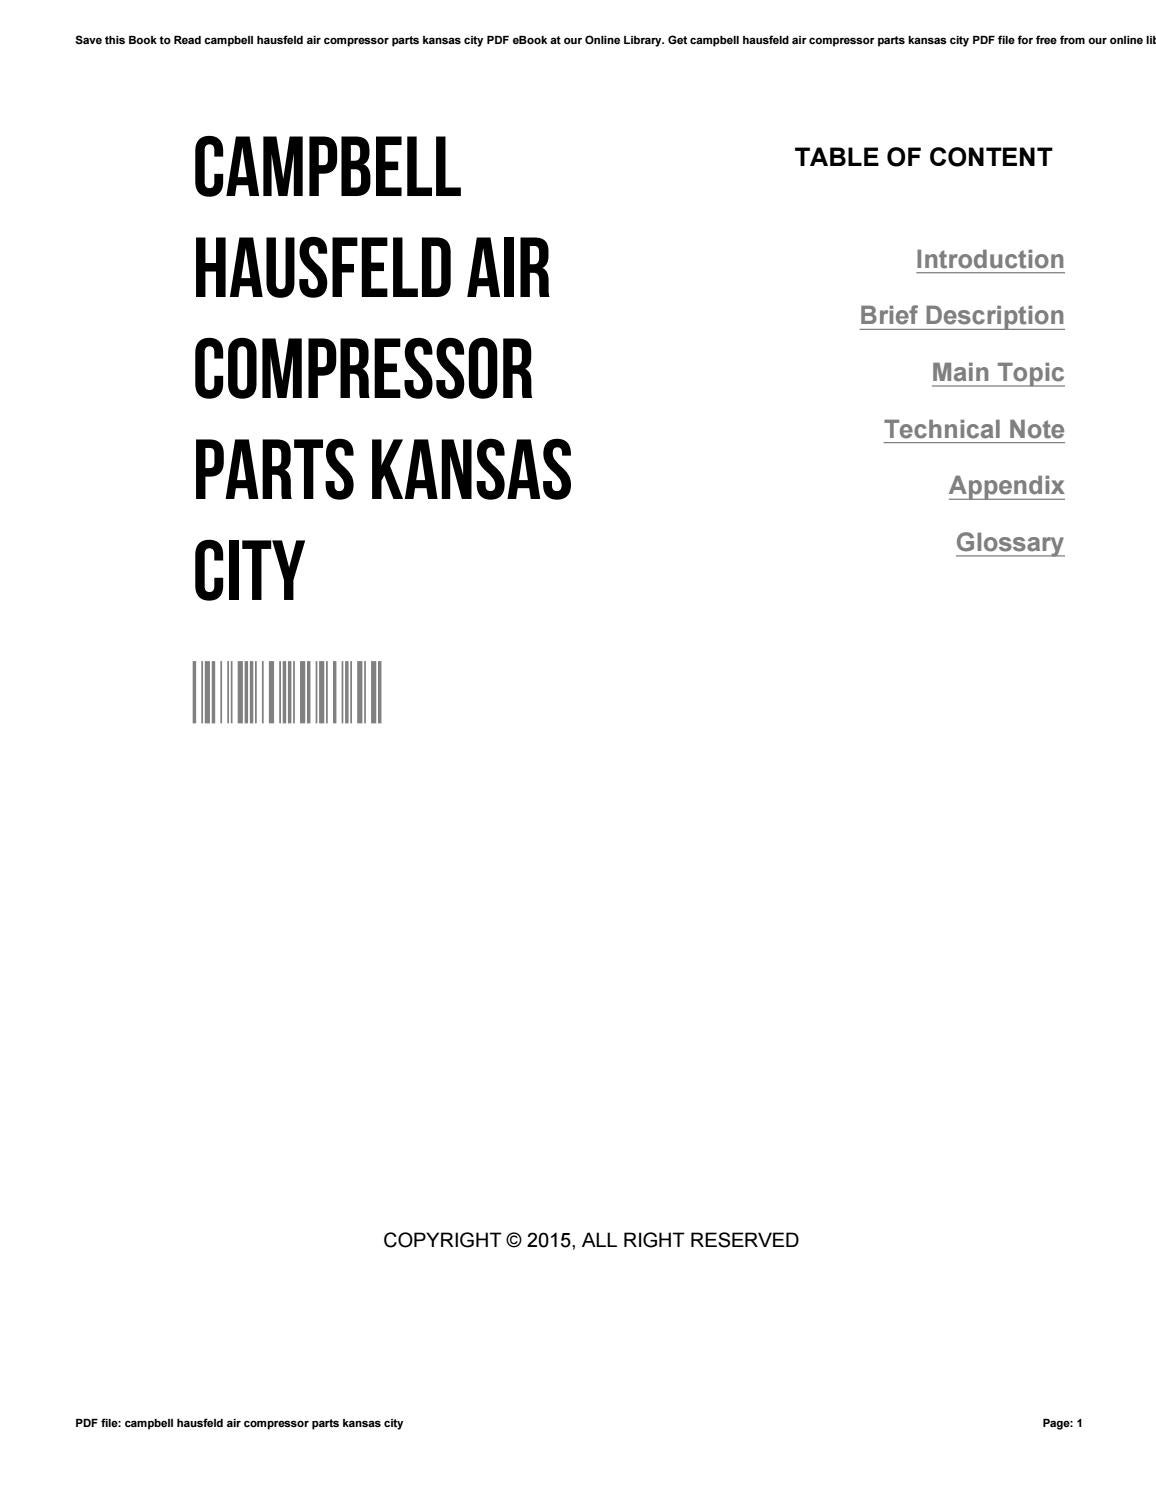 Campbell hausfeld air compressor parts kansas city by zhcne05 - issuu